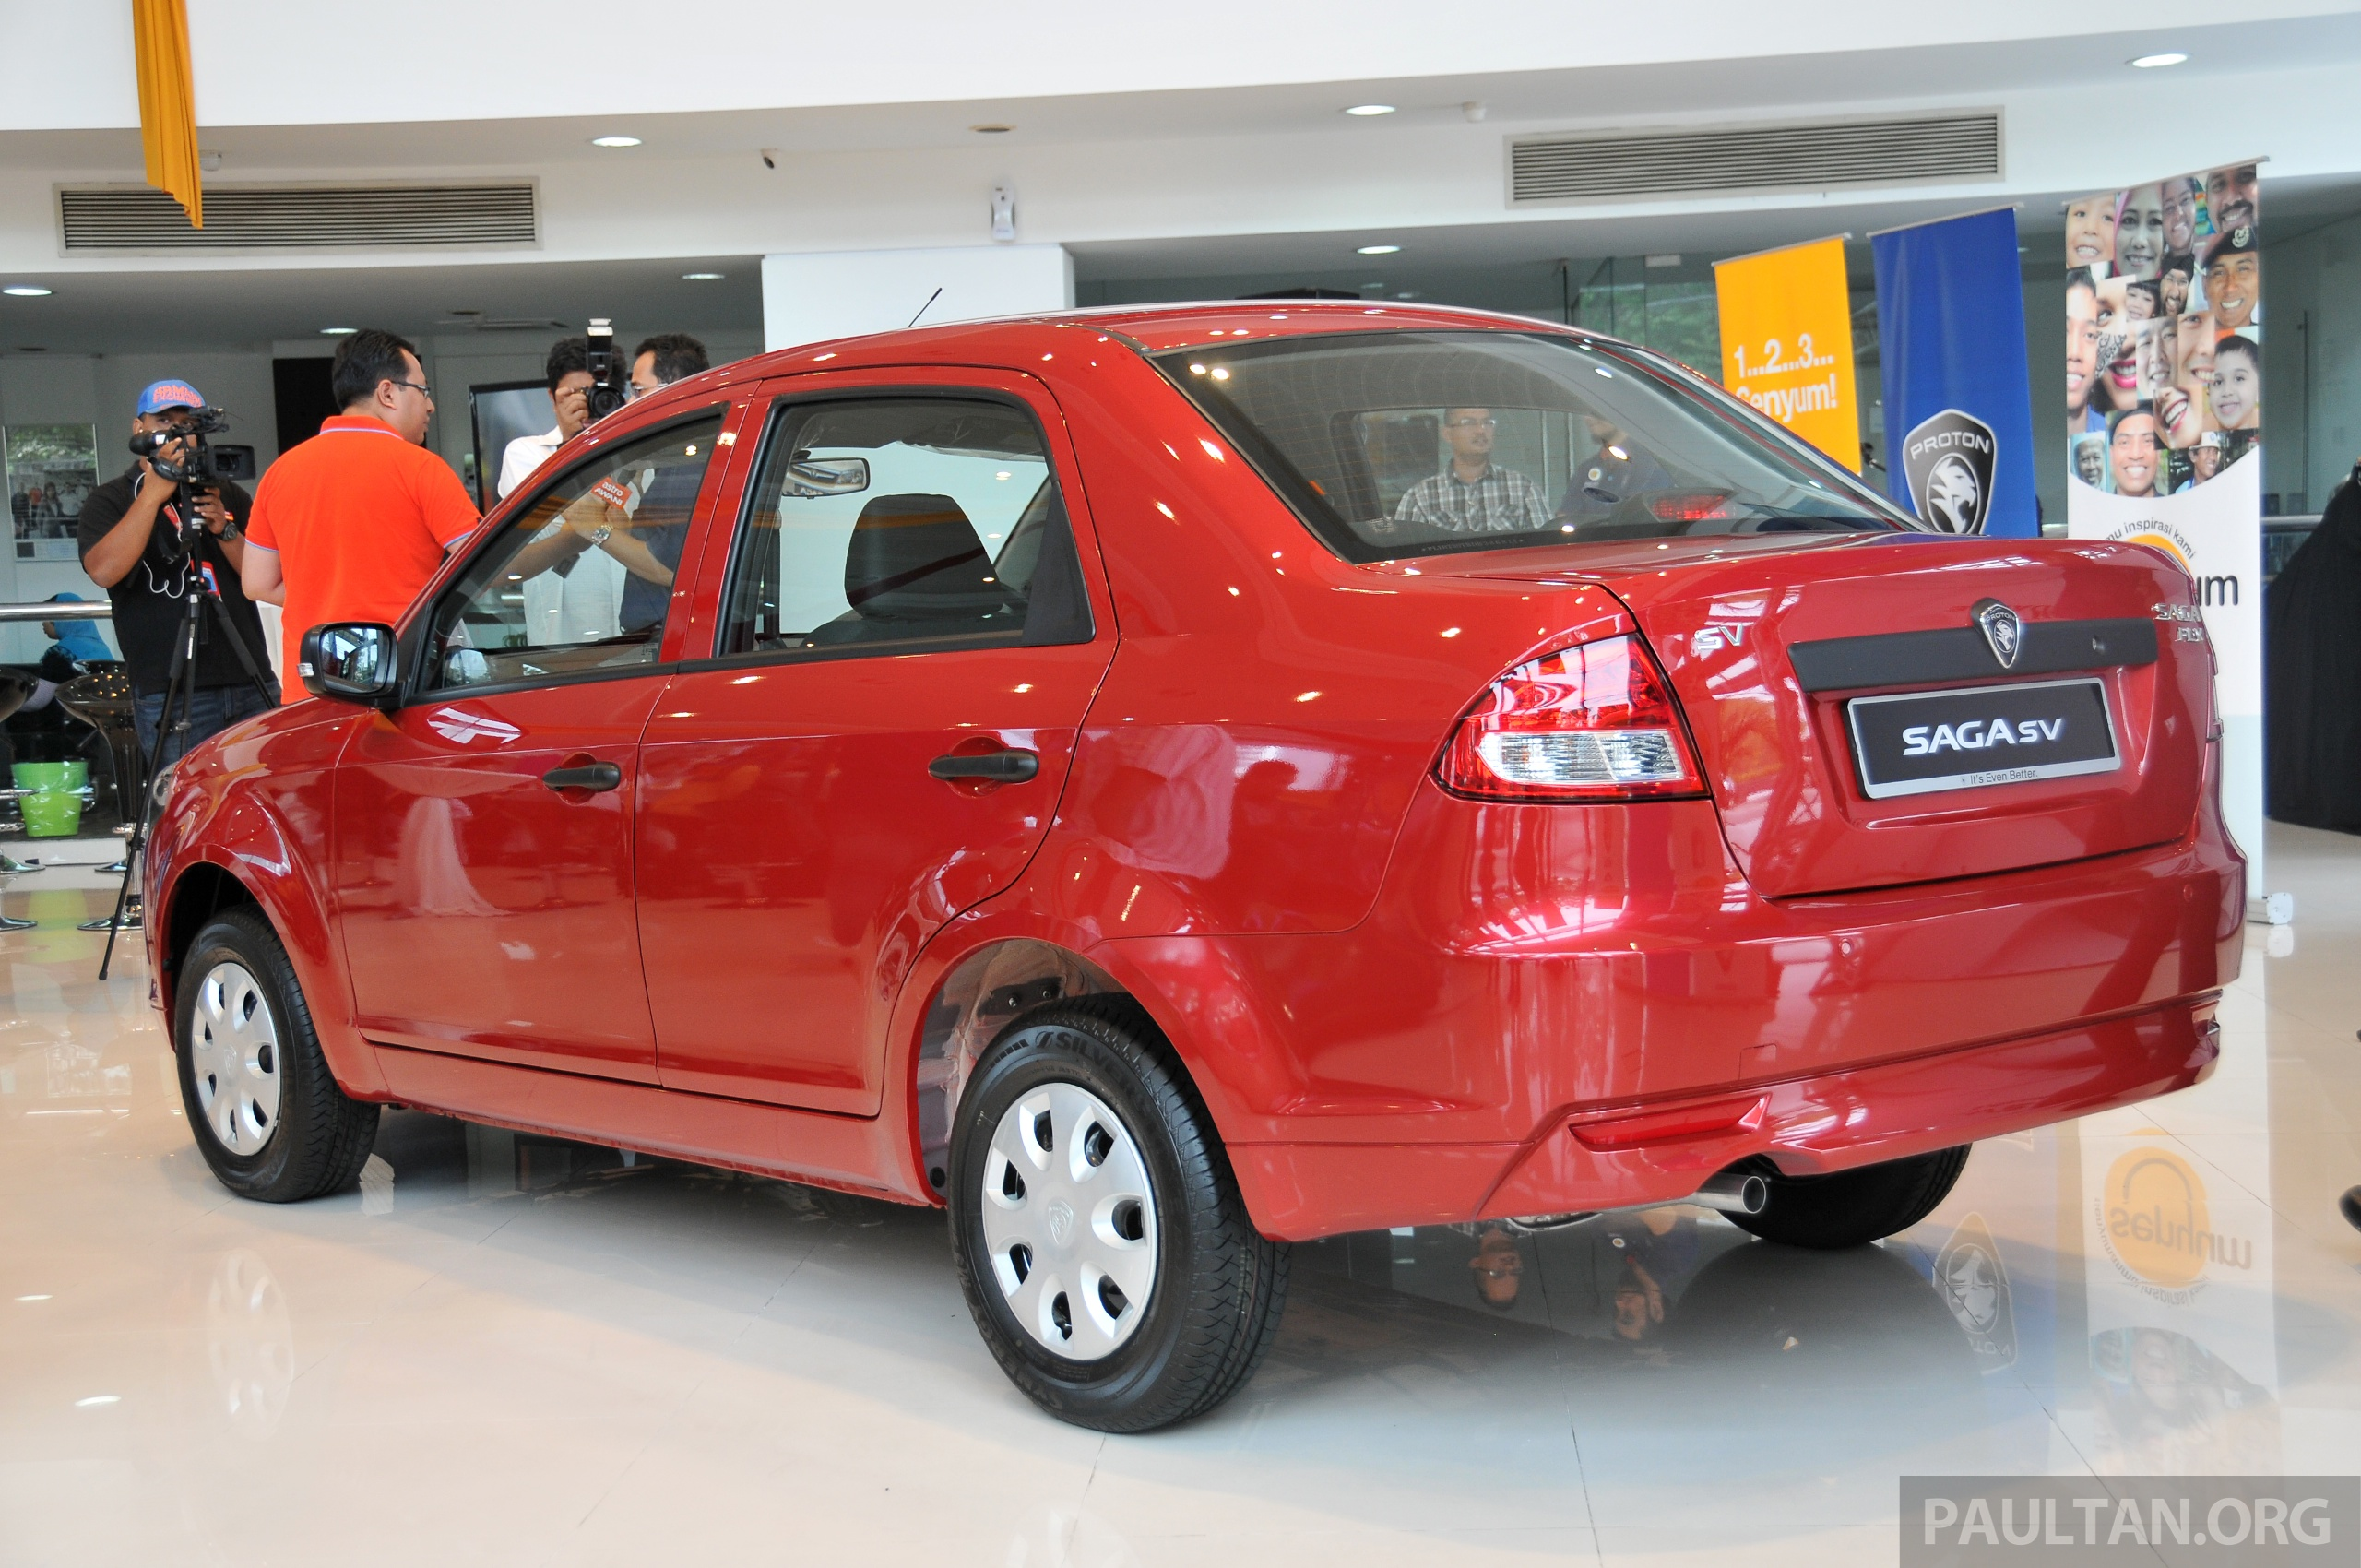 Proton Saga SV launched – from RM33,438 OTR Image 180532